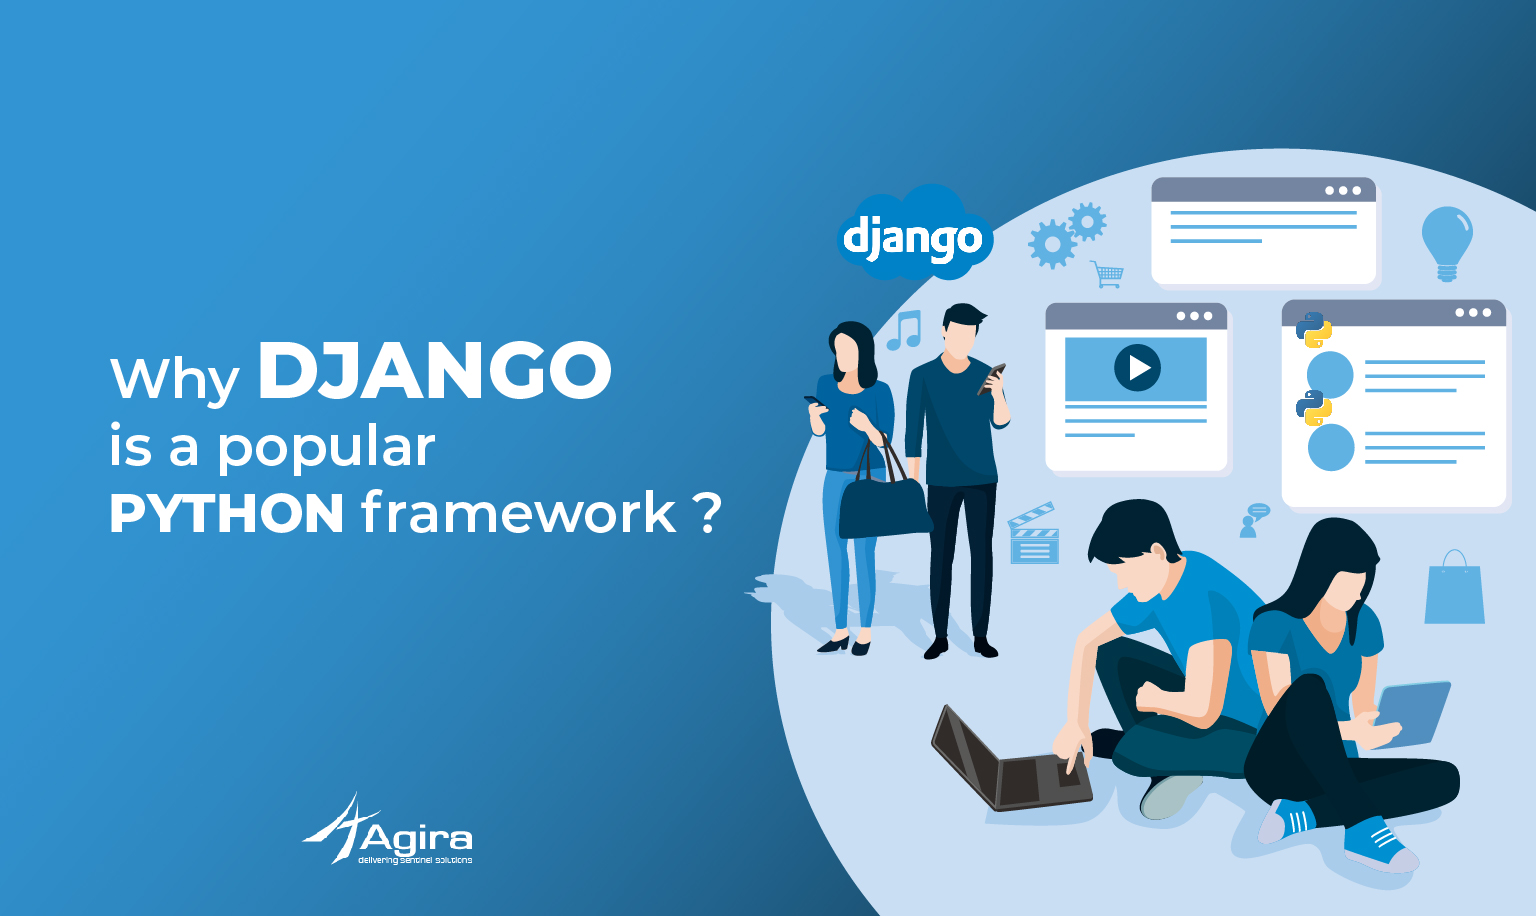 Why Django is a popular python framework